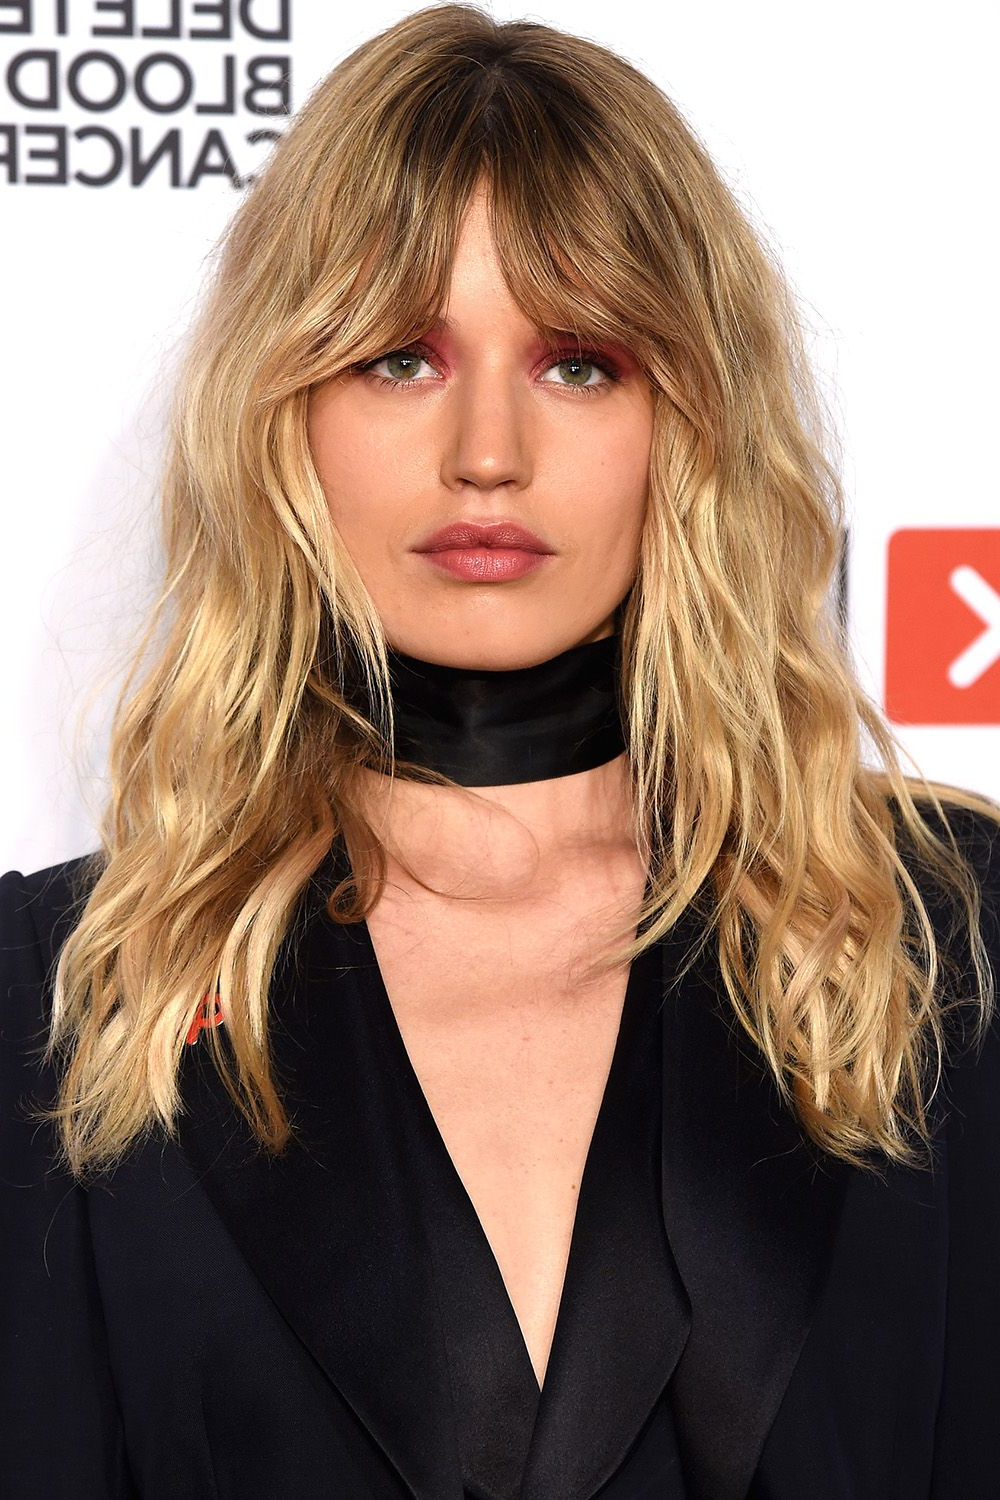 40 Best Medium Hairstyles – Celebrities With Shoulder Length Haircuts Intended For Popular Celebrities Medium Haircuts (View 2 of 20)